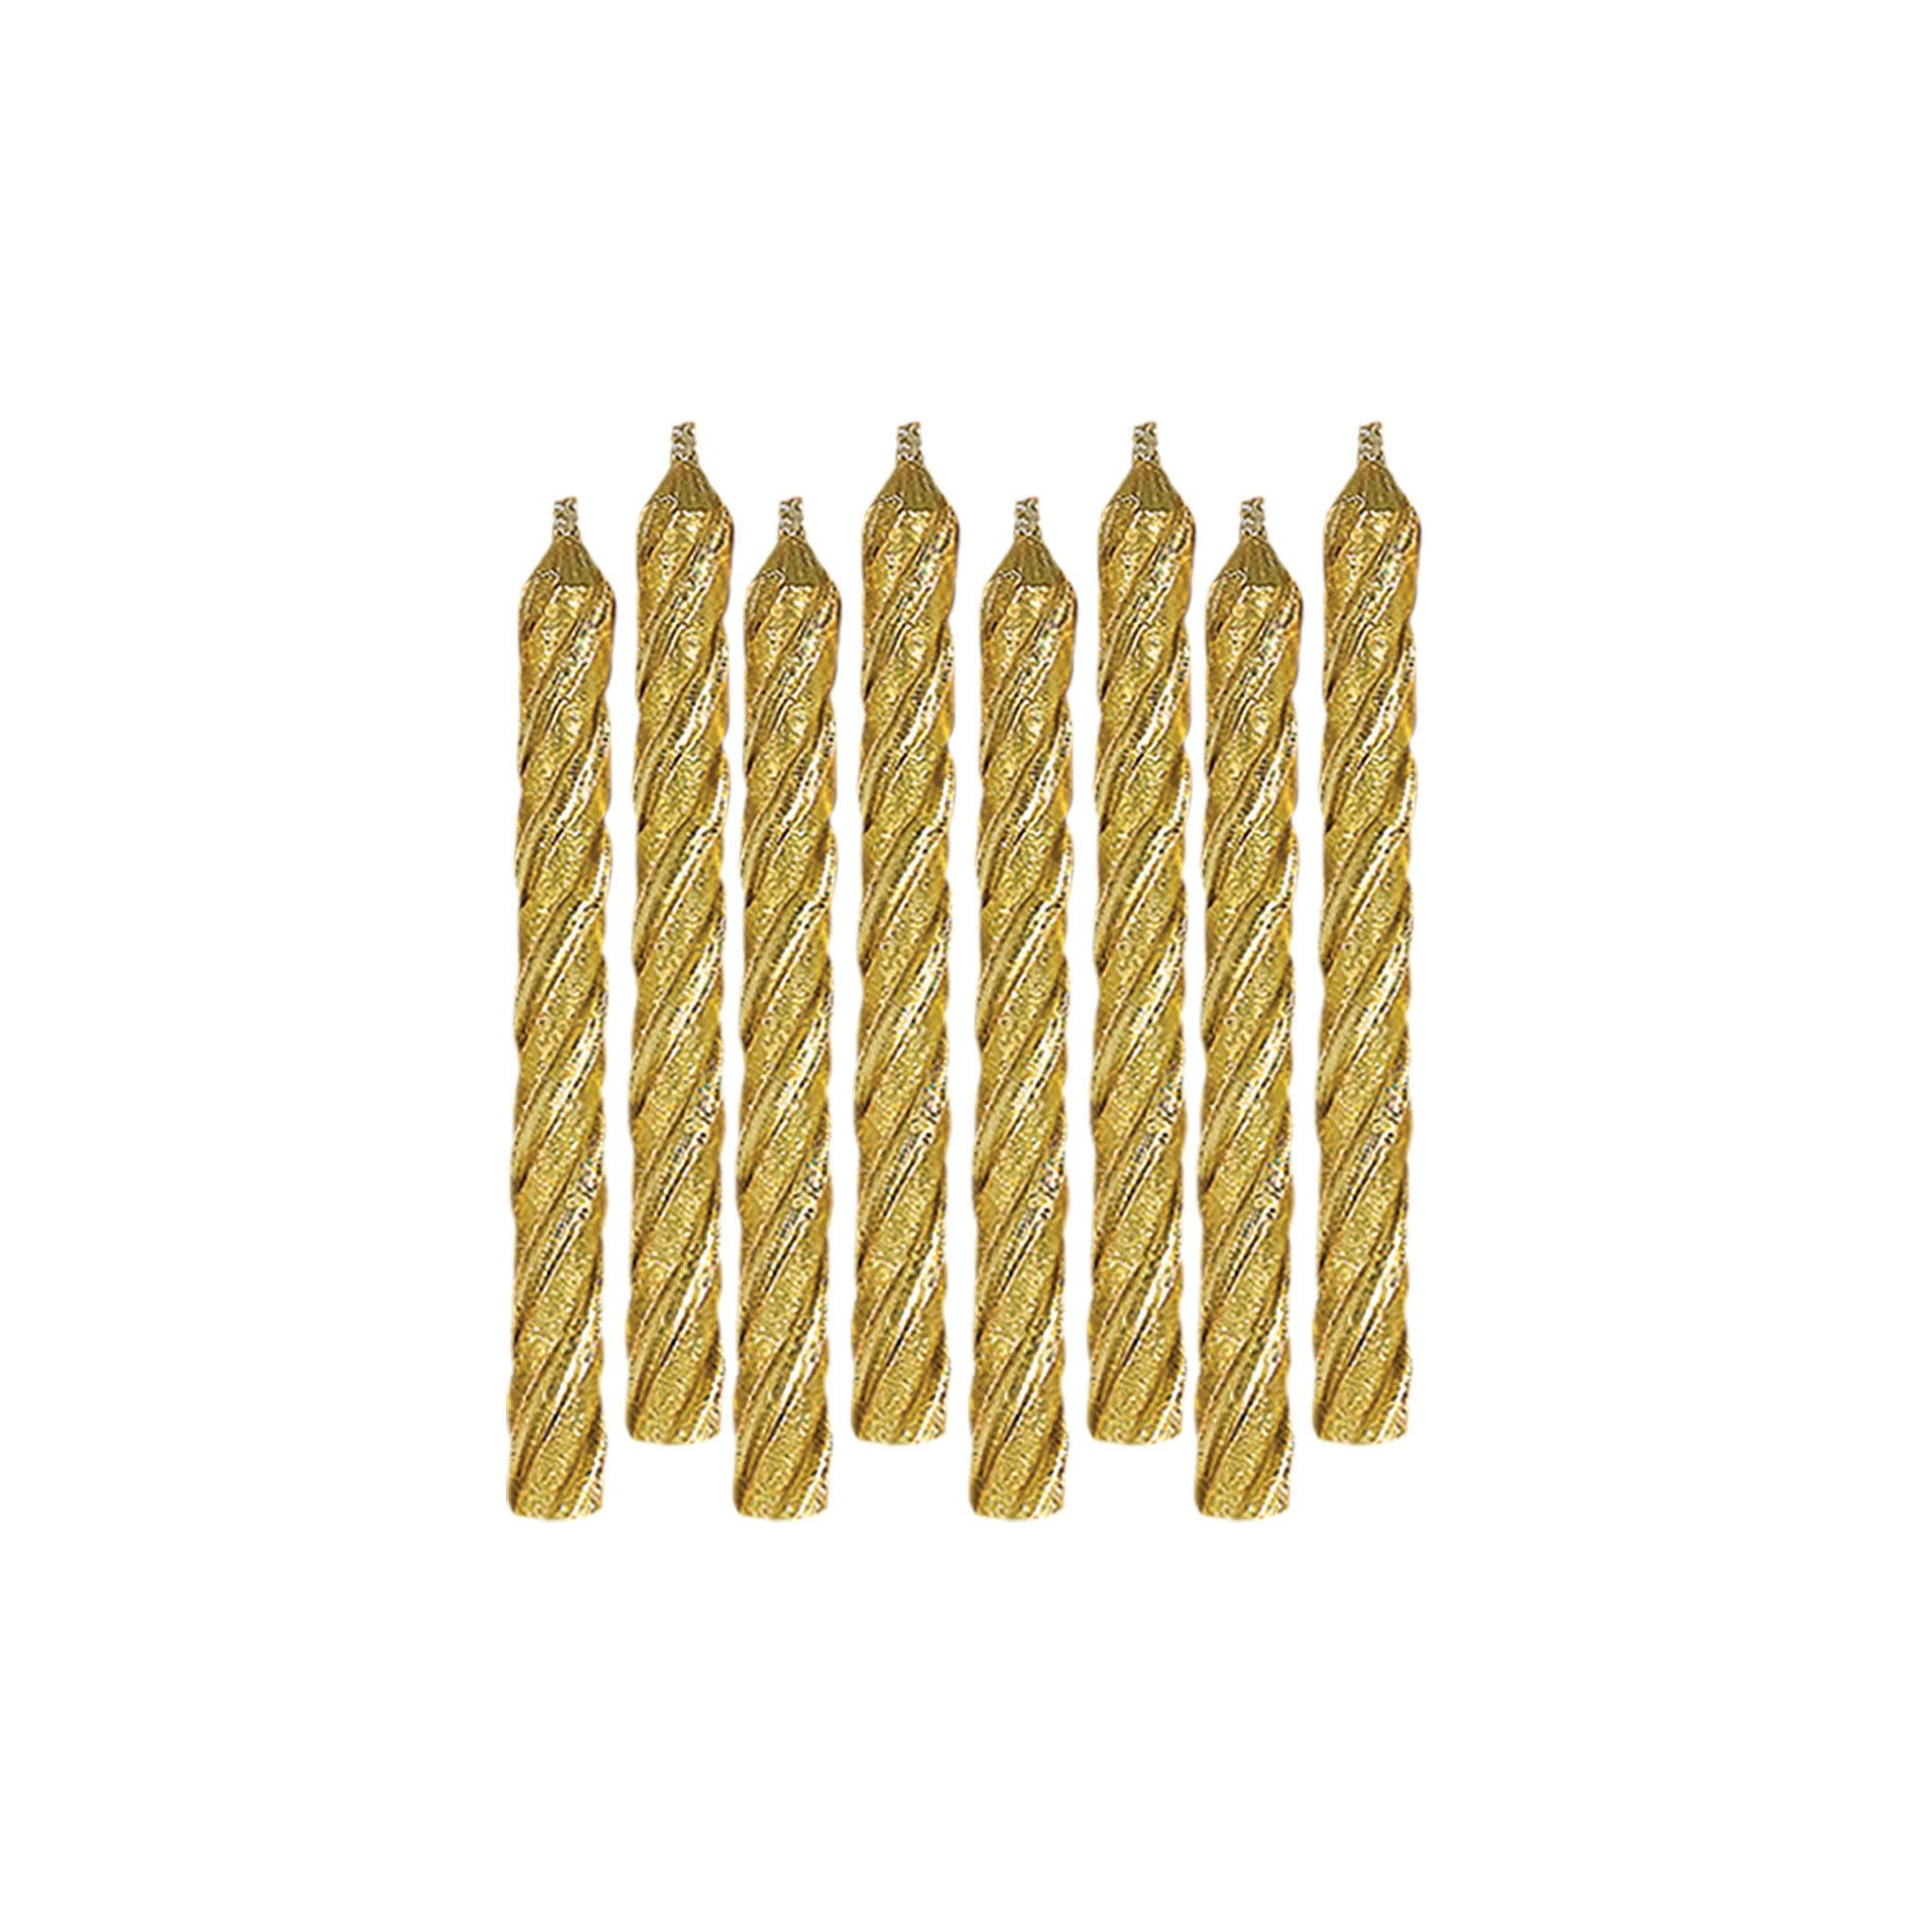 Large Spiral Candles - Gold